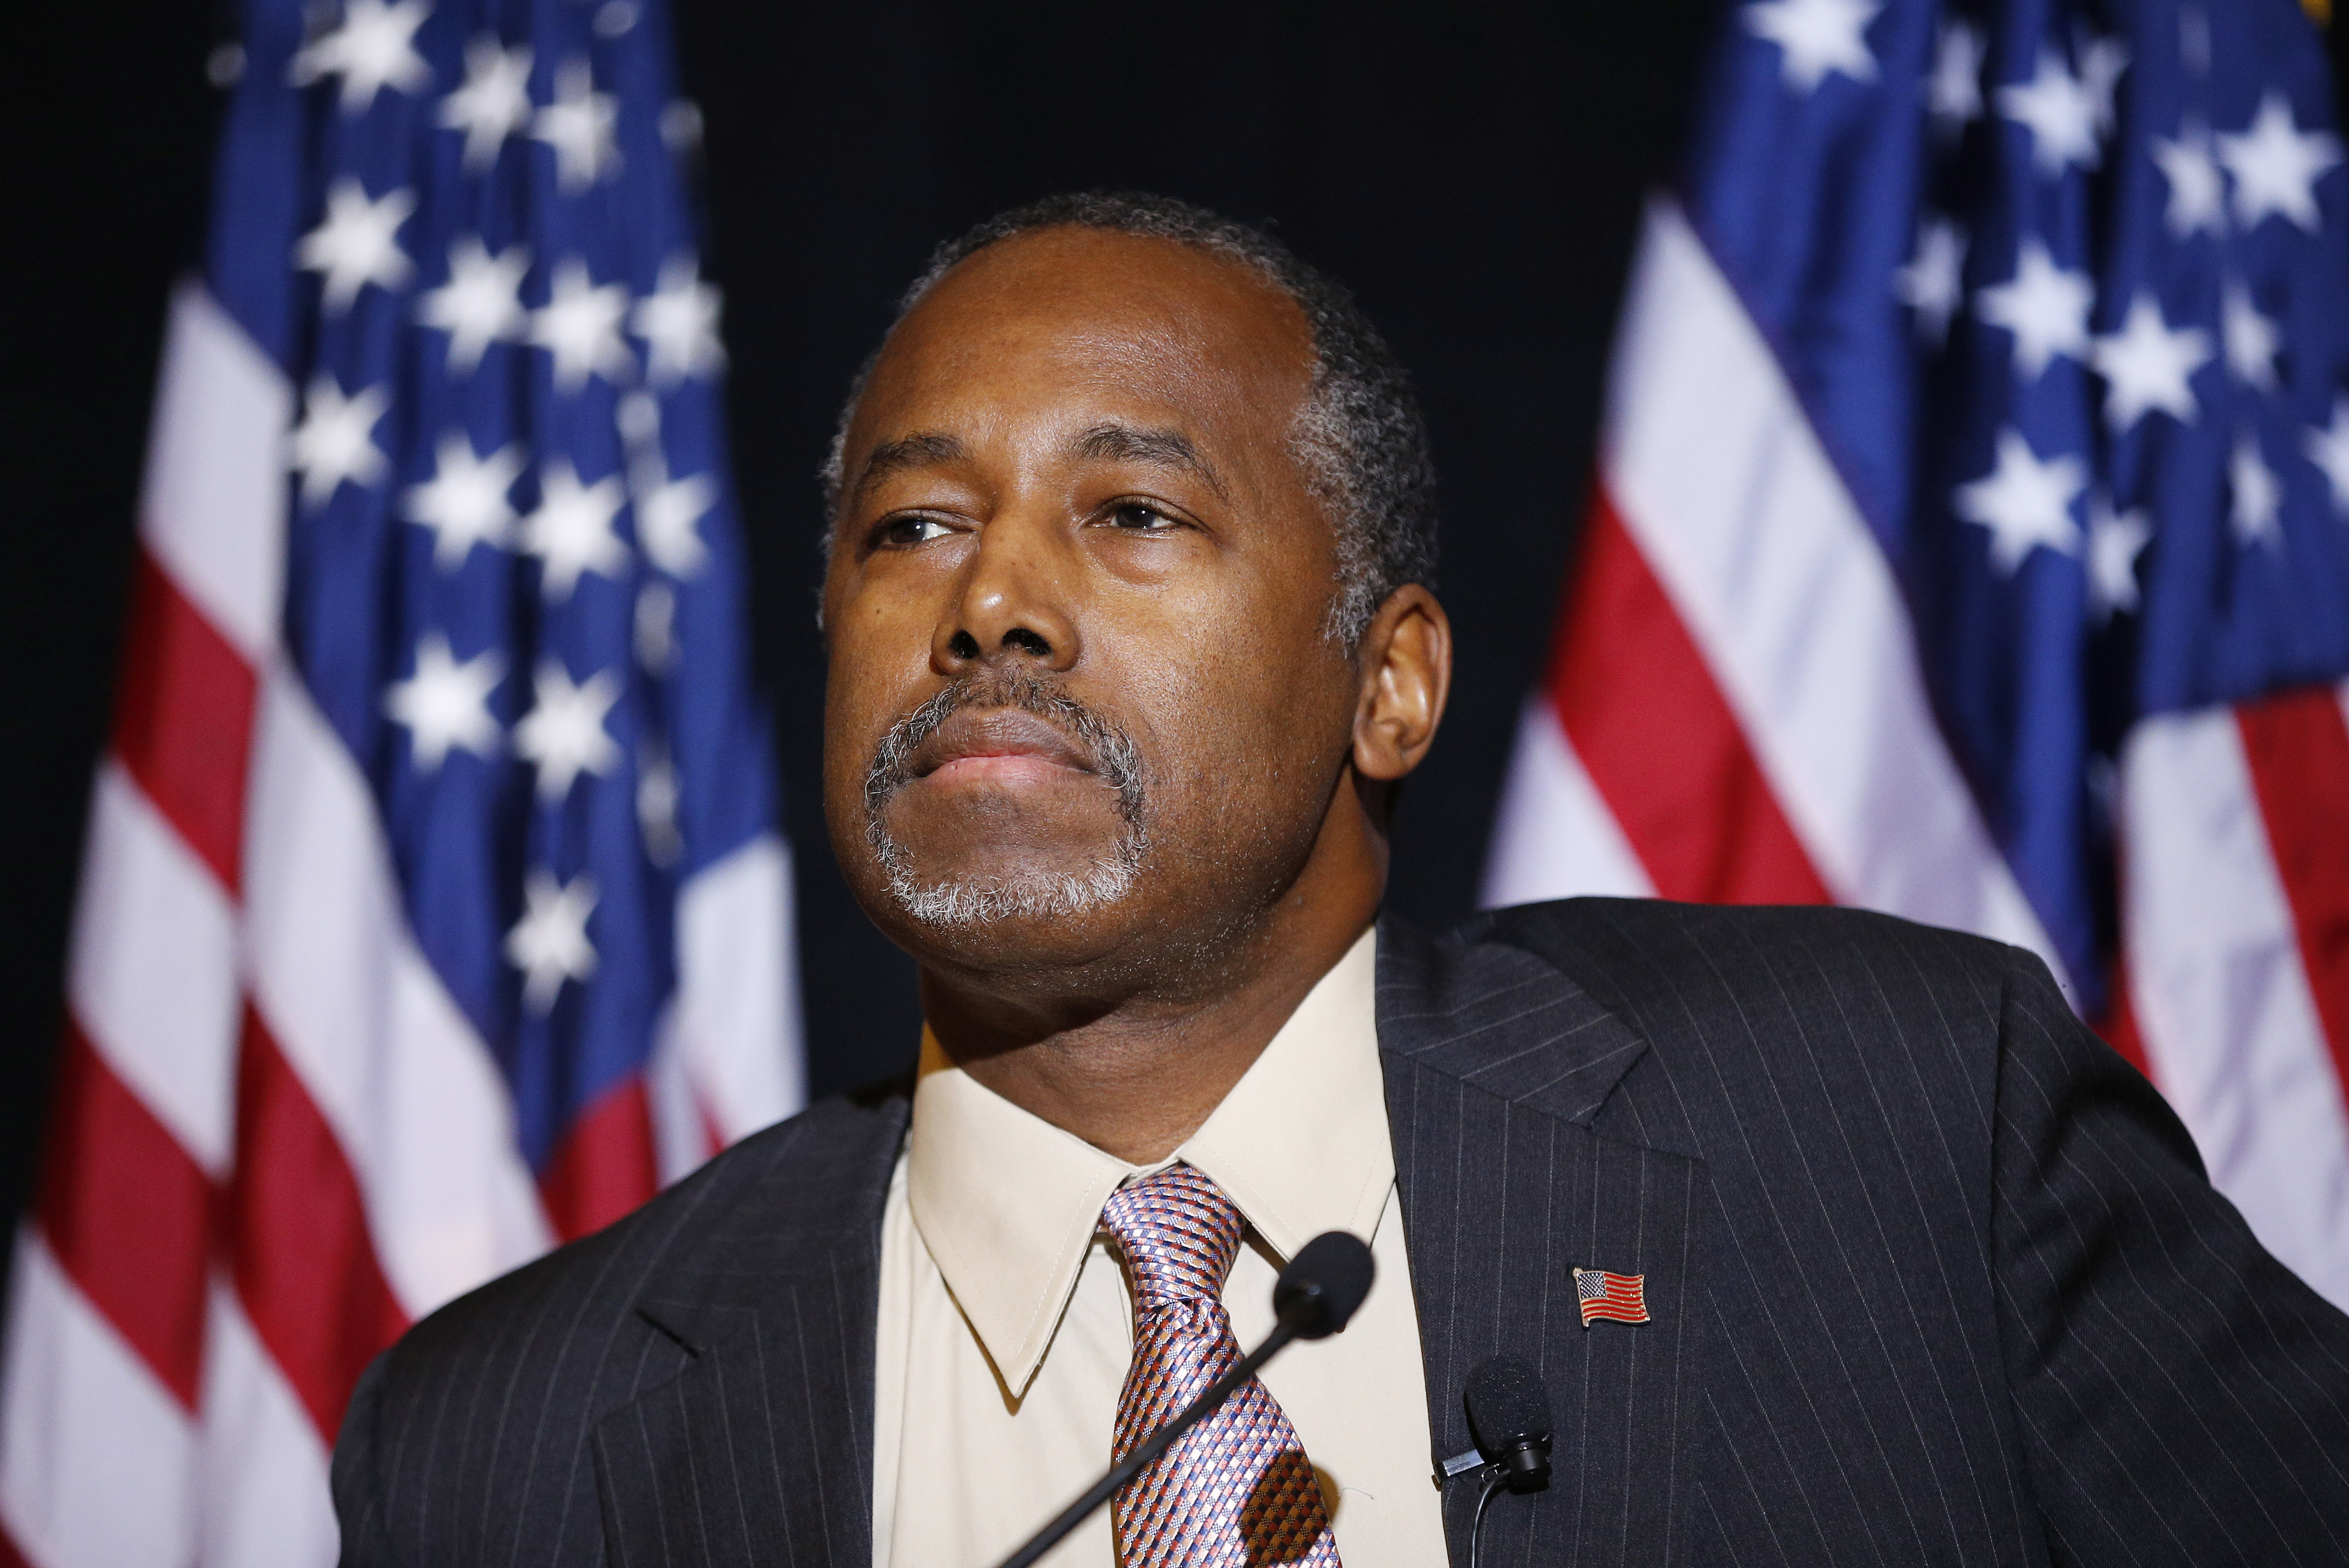 Ben Carson after camp tour Absorb Syrian refugees in Mideast